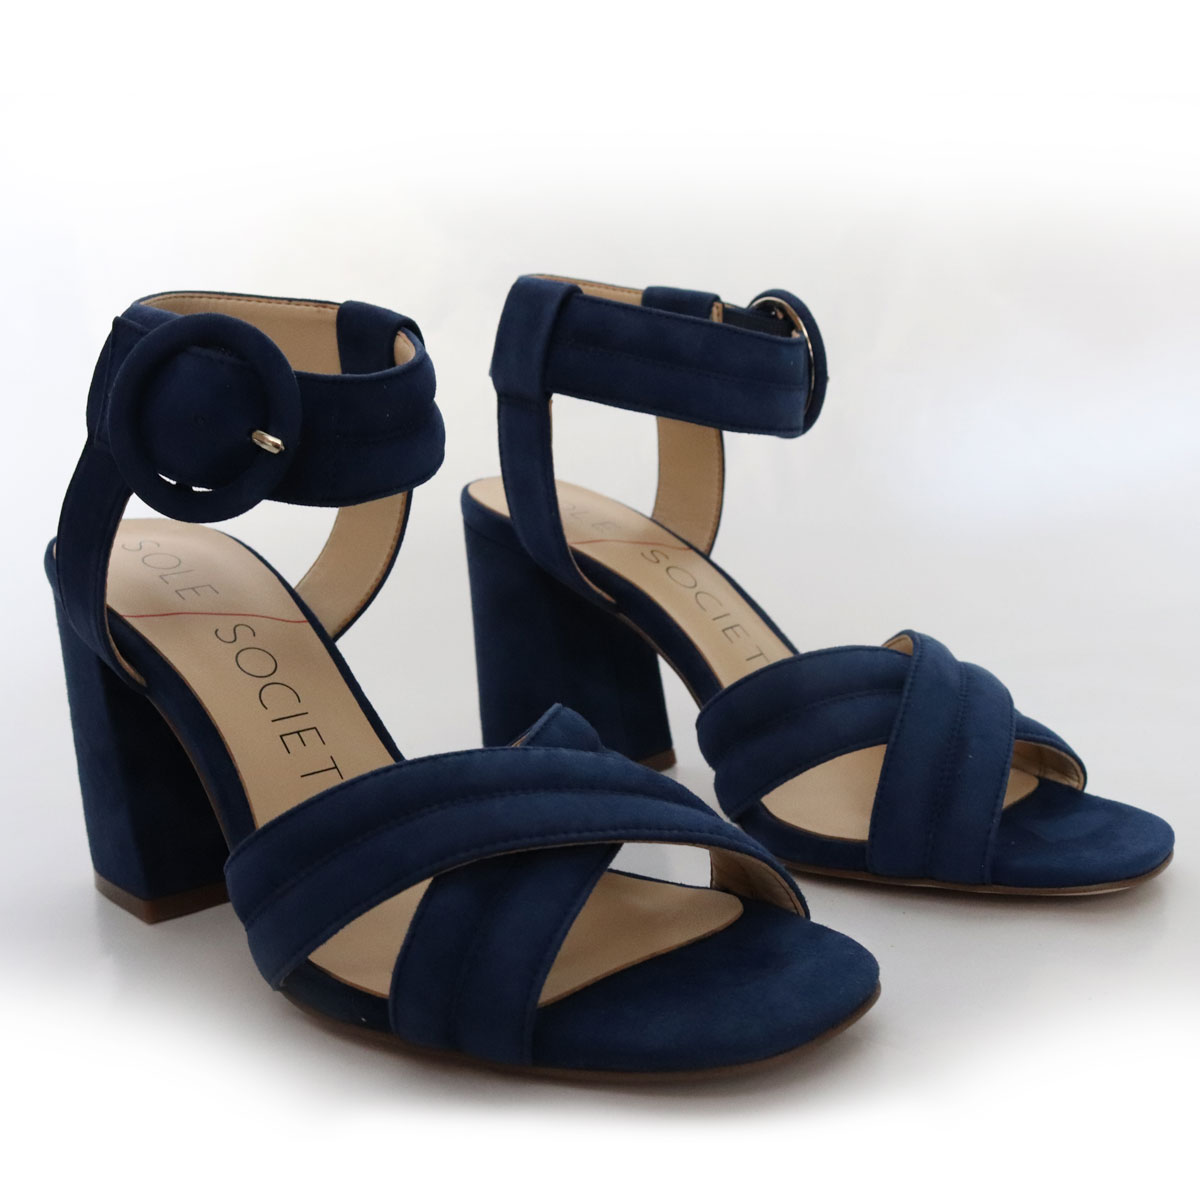 Sole Society Blue Suede Open Toe Sandal New Items